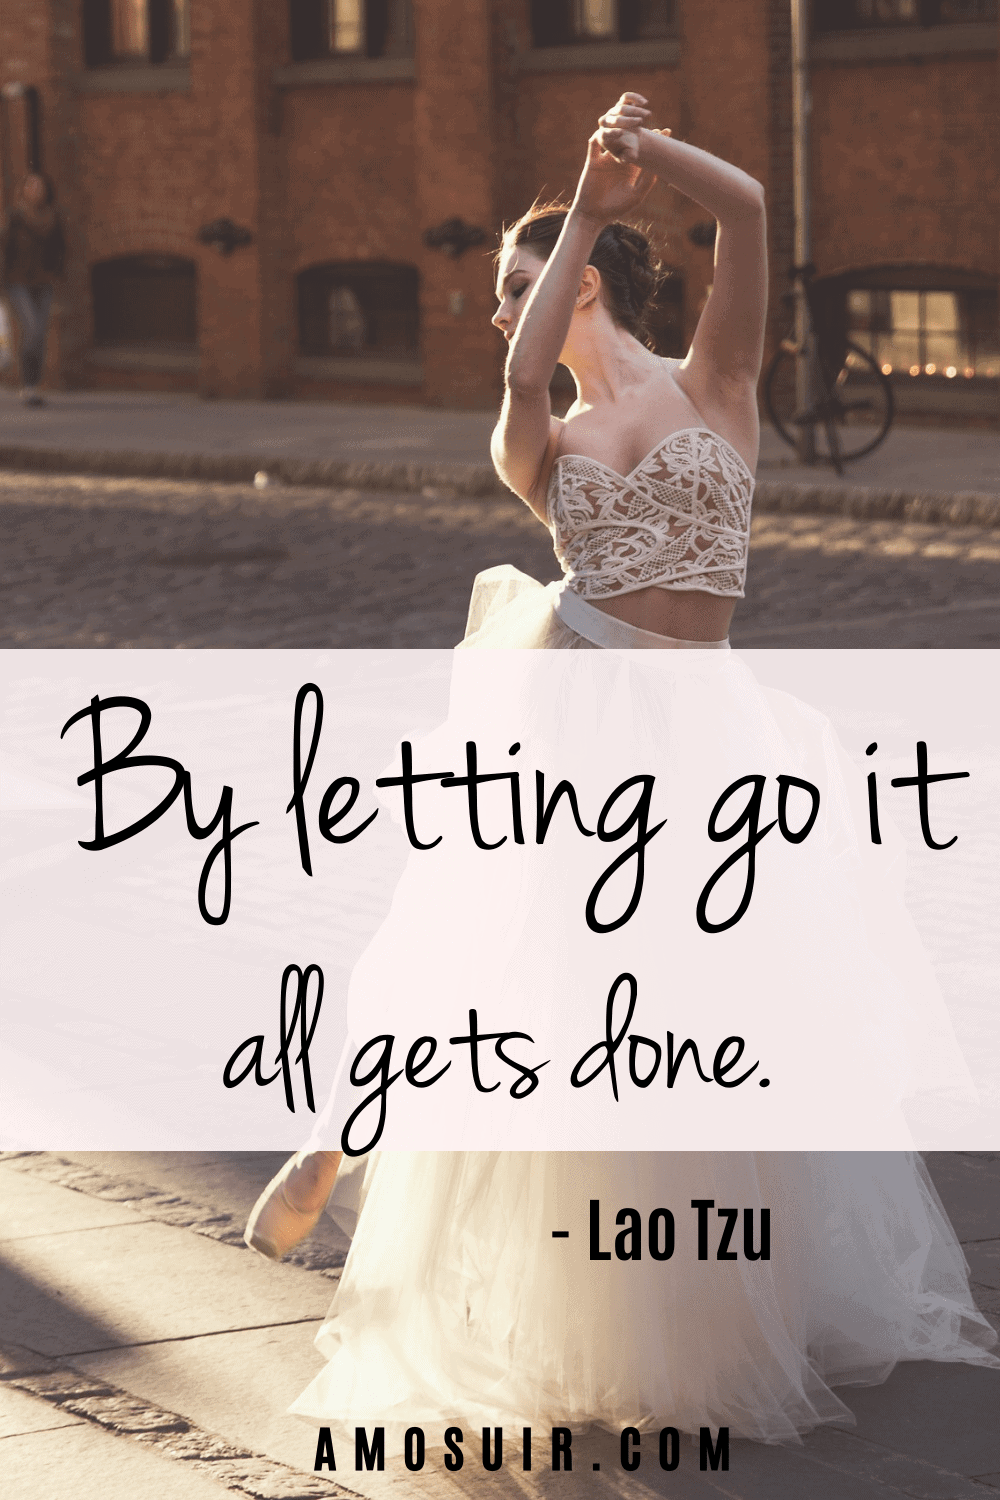 anxiety motivational quotes - by letting go it all gets done